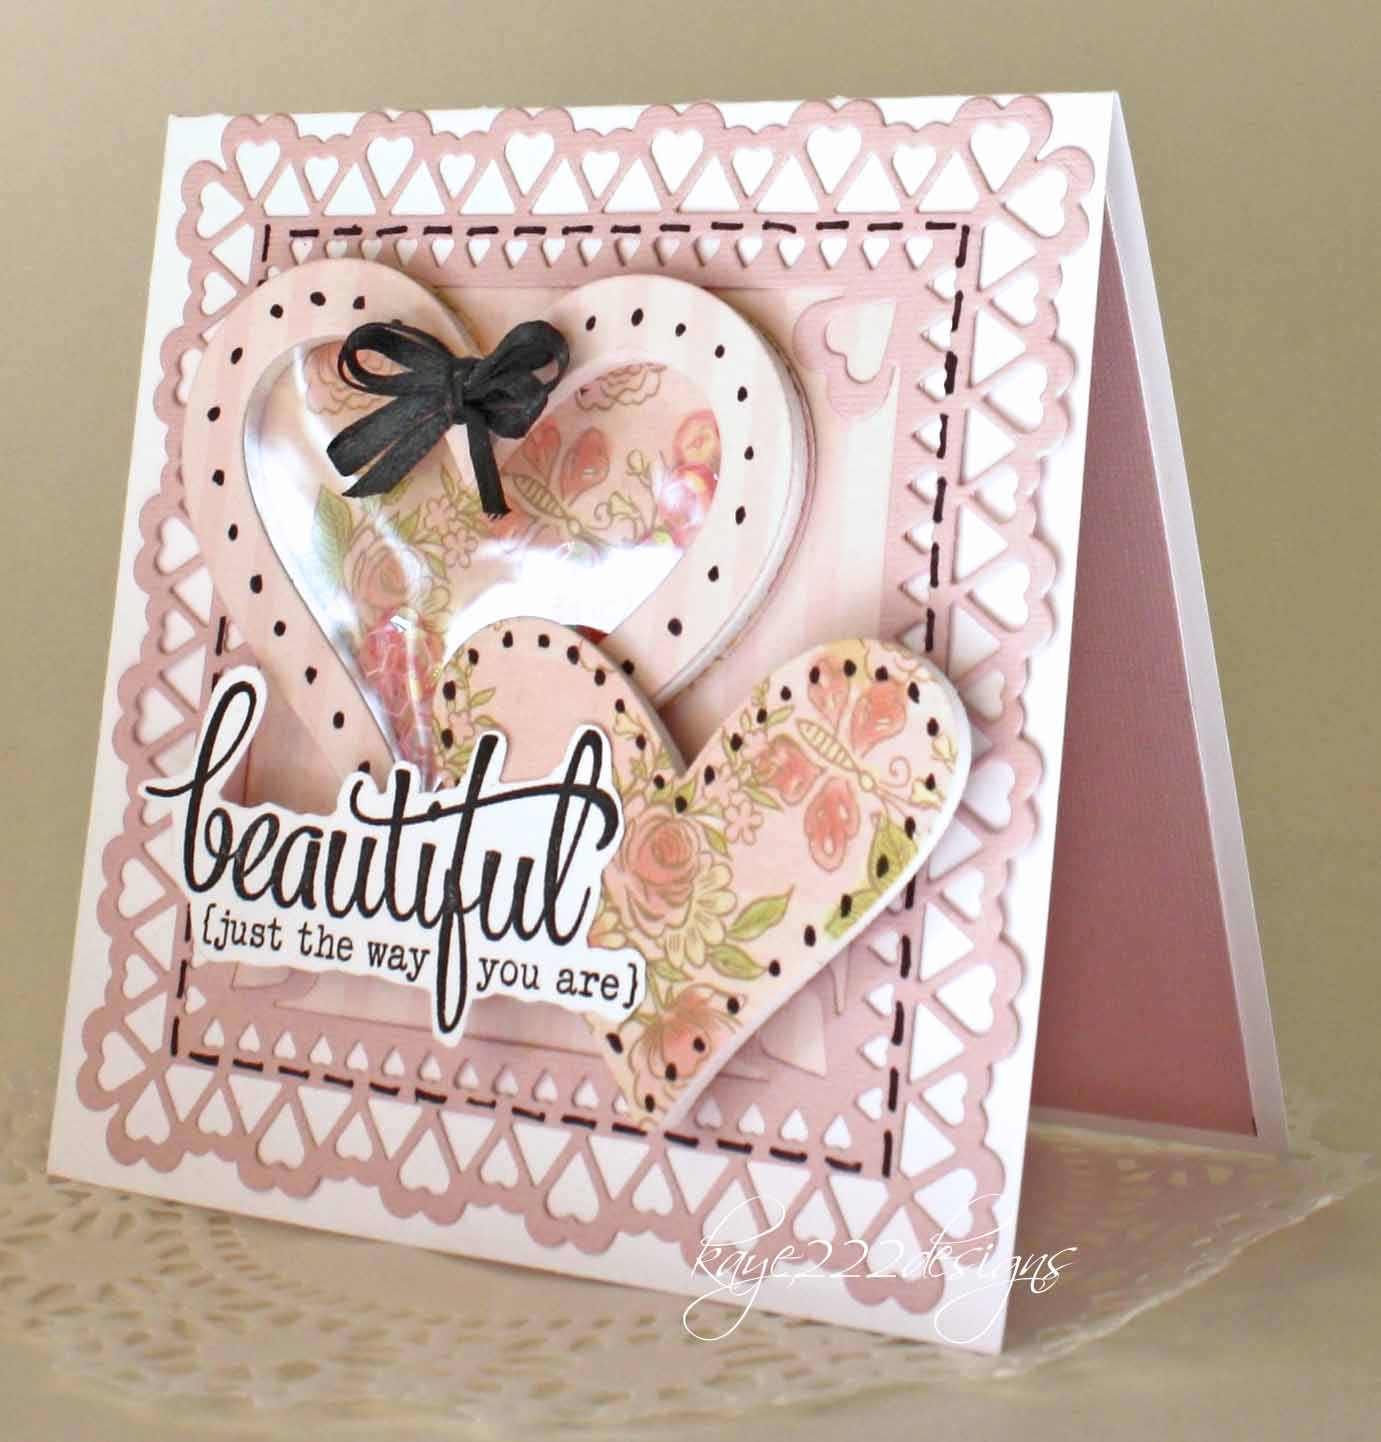 beyond beauty: beautiful heart shaker card with cheery lynn designs